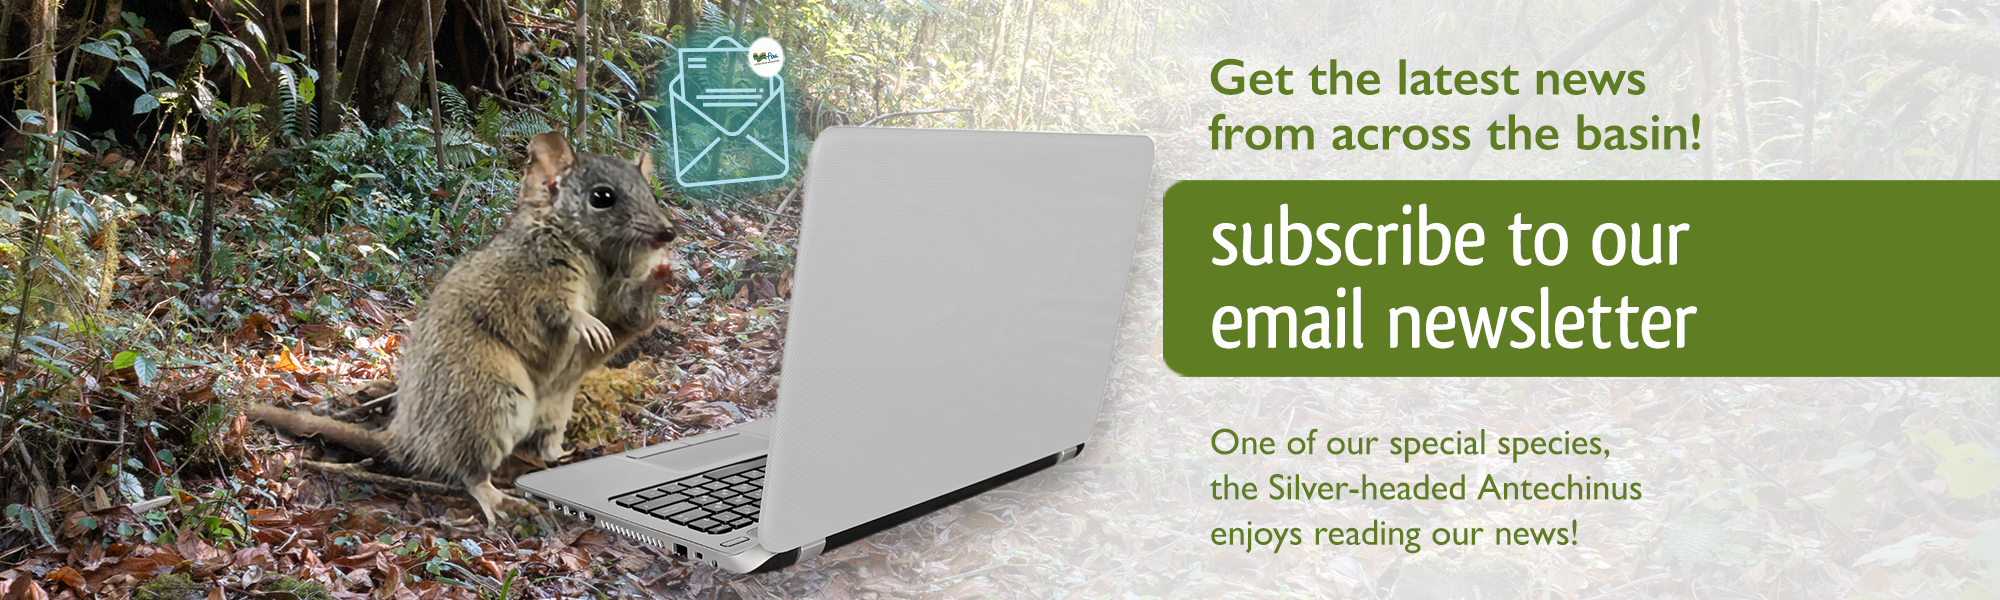 FBA092 Subscribe to newsletter_Web Banner